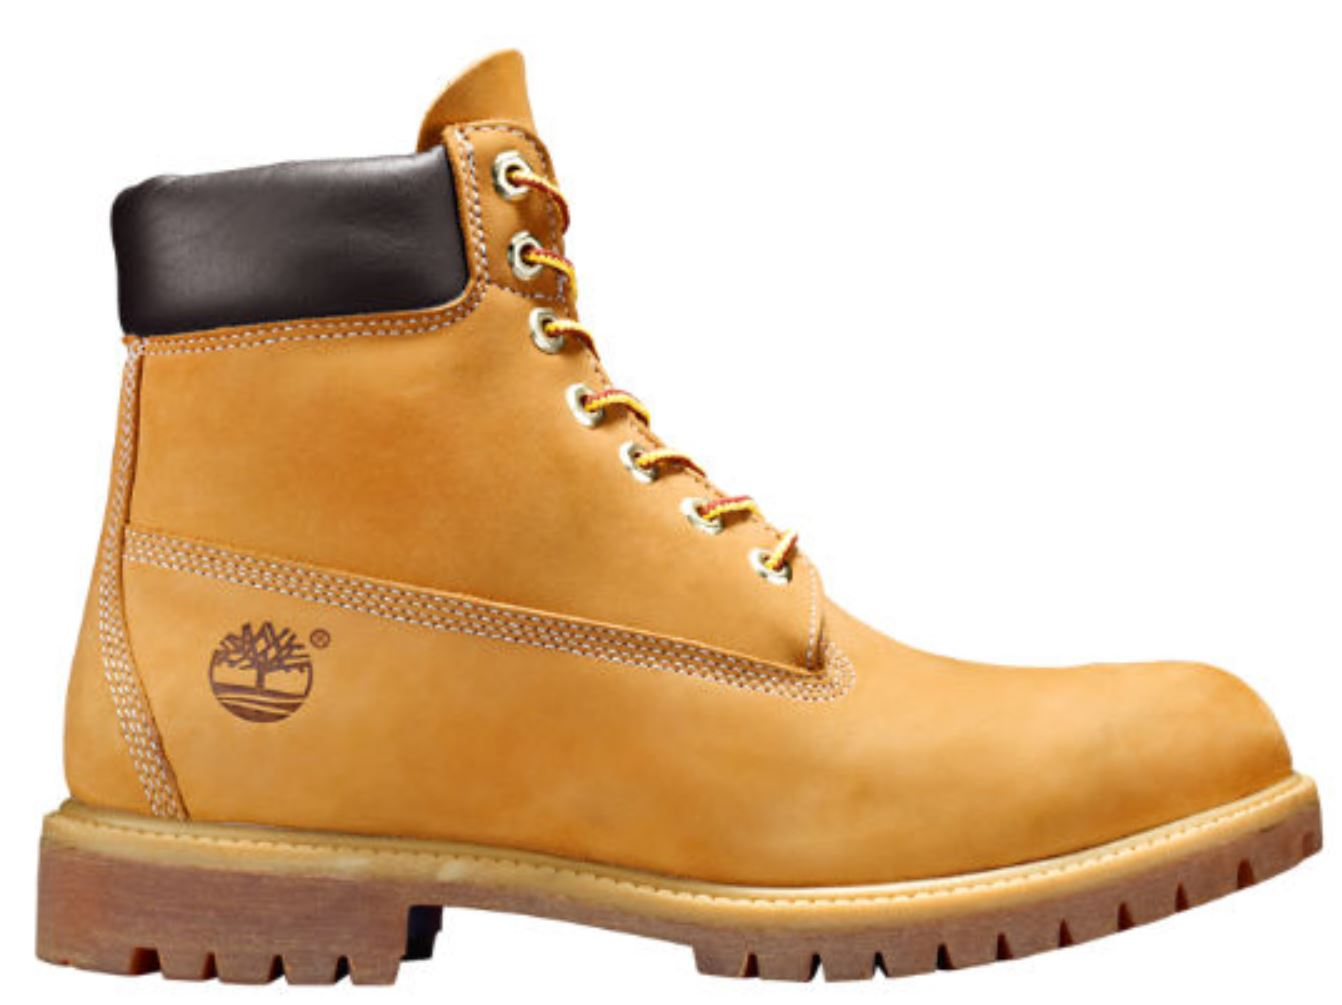 Timberland Boots from timberland.com